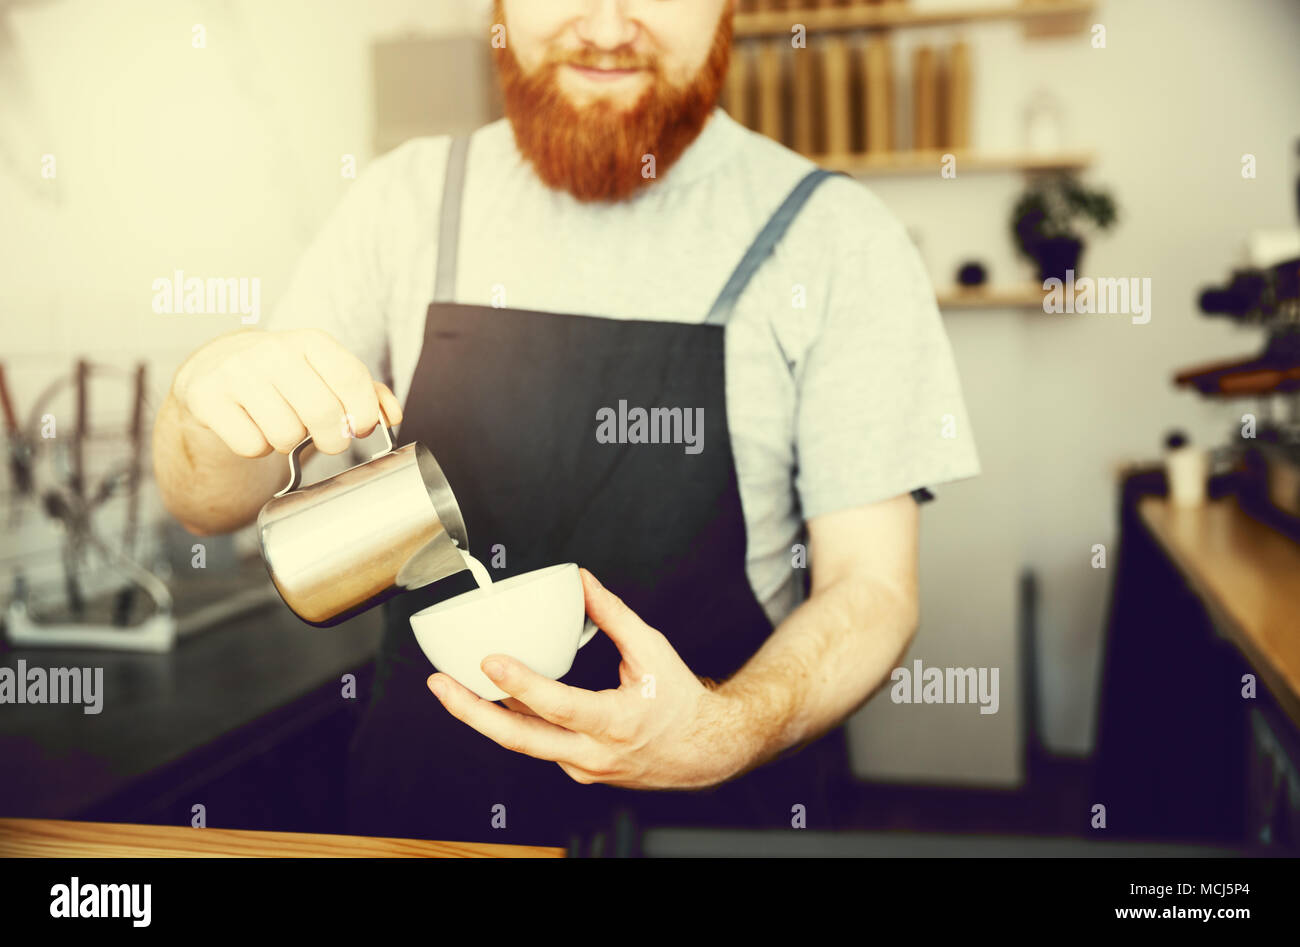 Coffee Business Concept - handsome bearded man in apron making coffee while standing at cafe - Stock Image